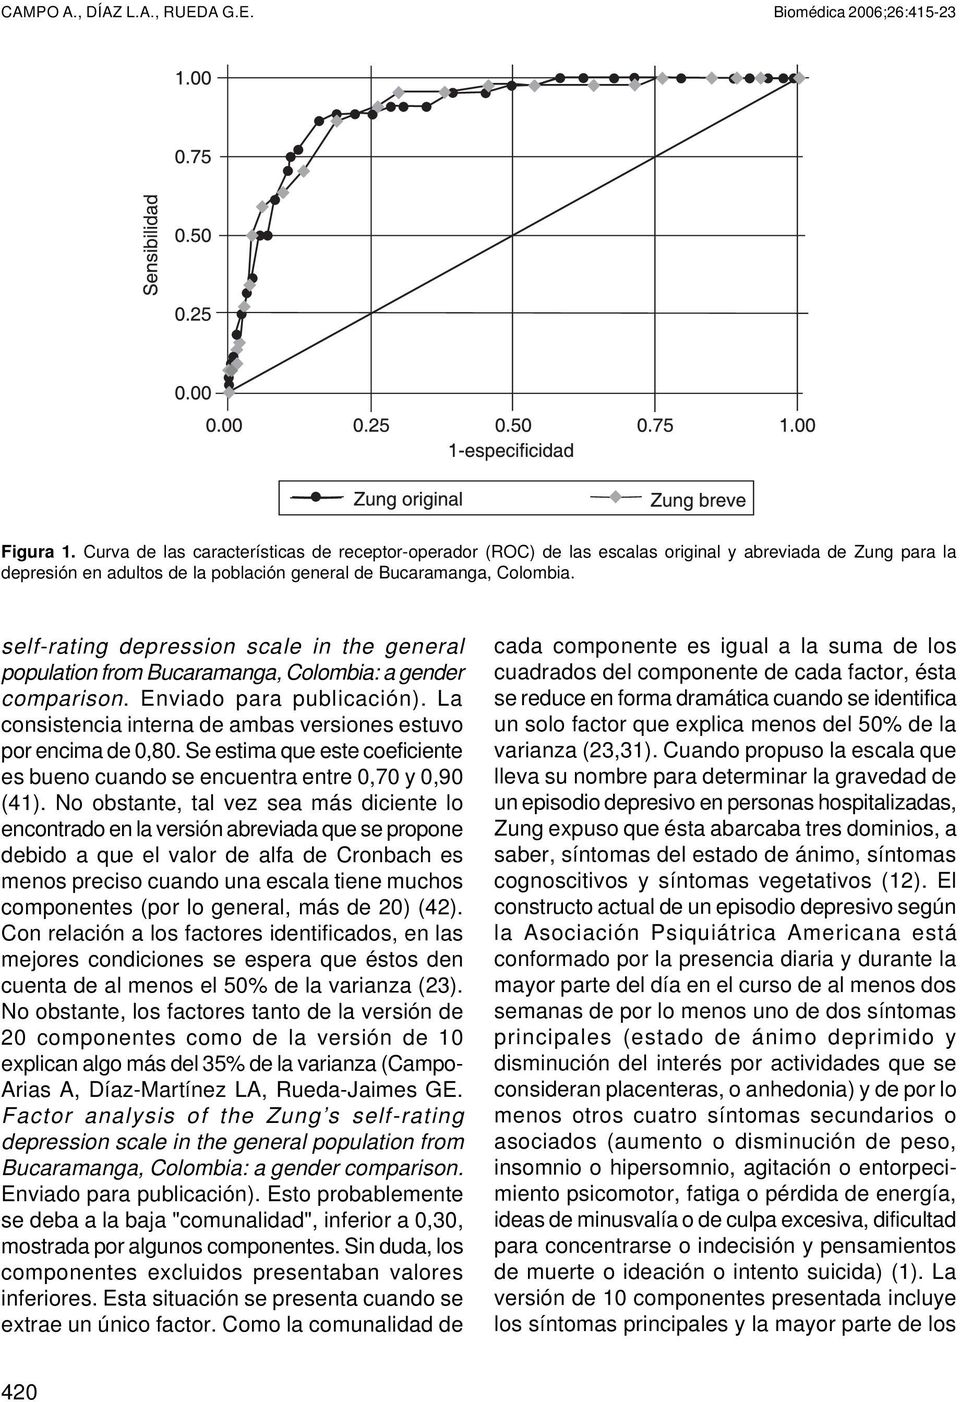 self-rating depression scale in the general population from Bucaramanga, Colombia: a gender comparison. Enviado para publicación). La consistencia interna de ambas versiones estuvo por encima de 0,80.